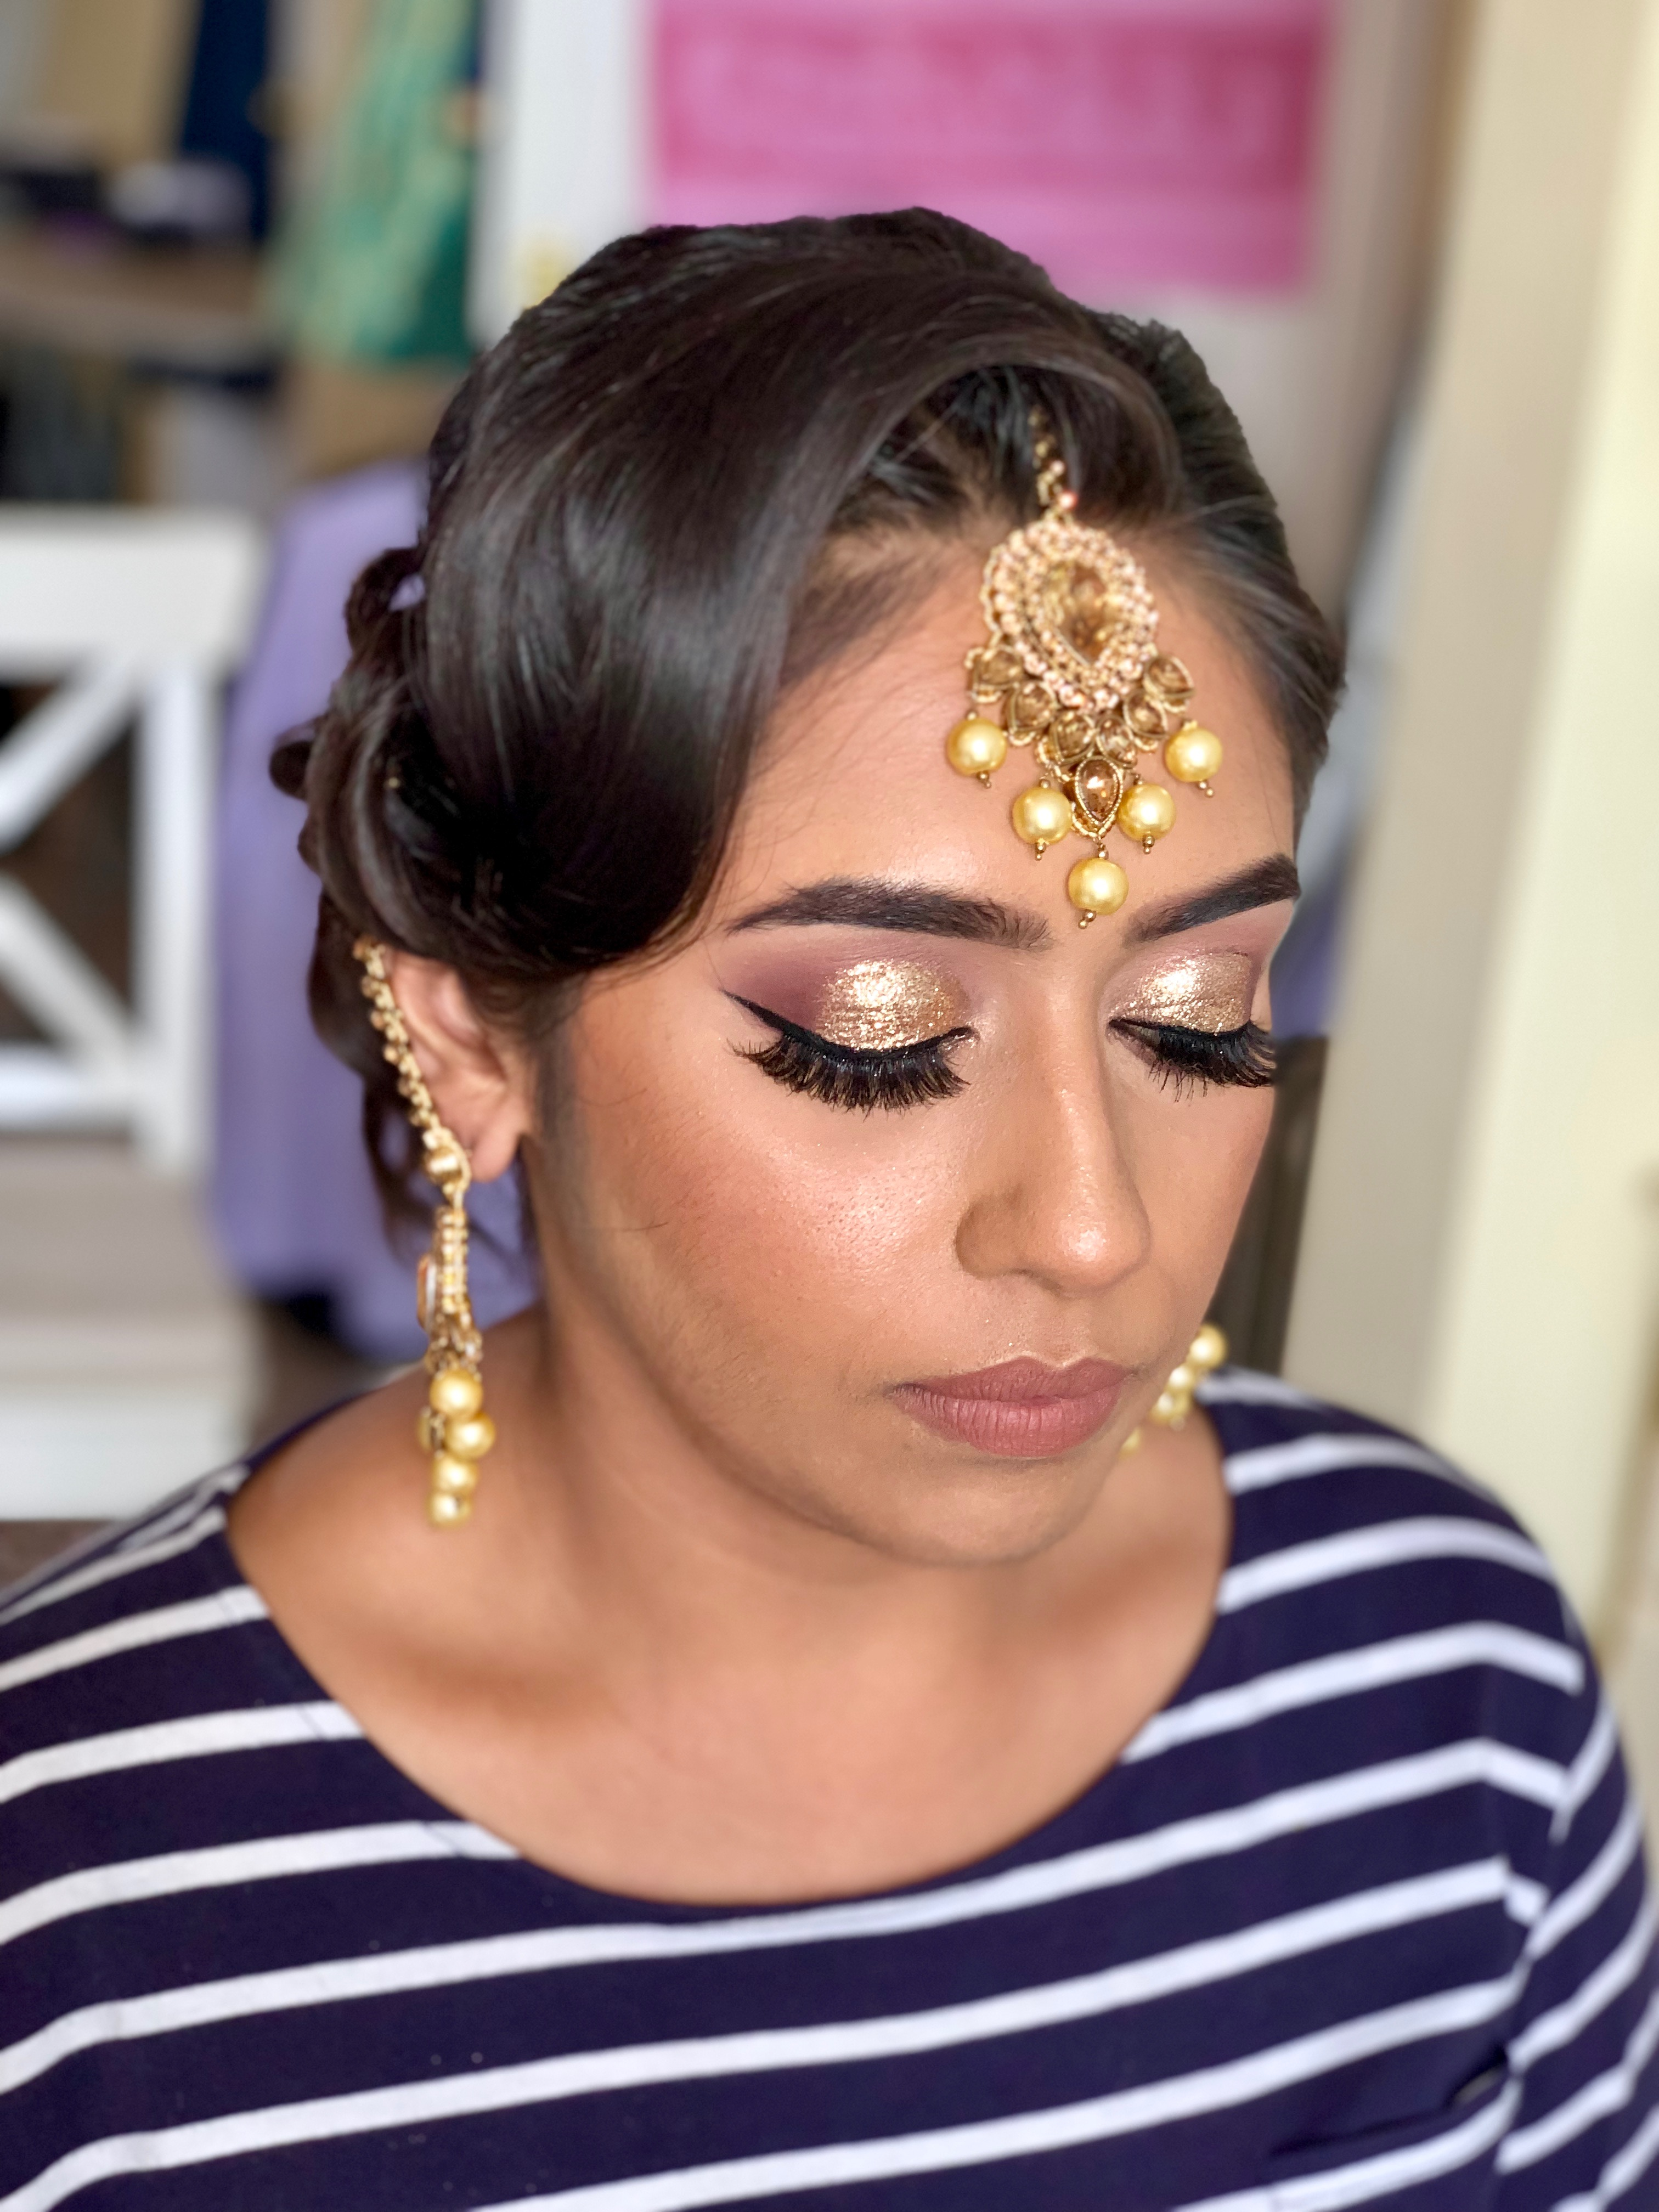 Party hair and makeup